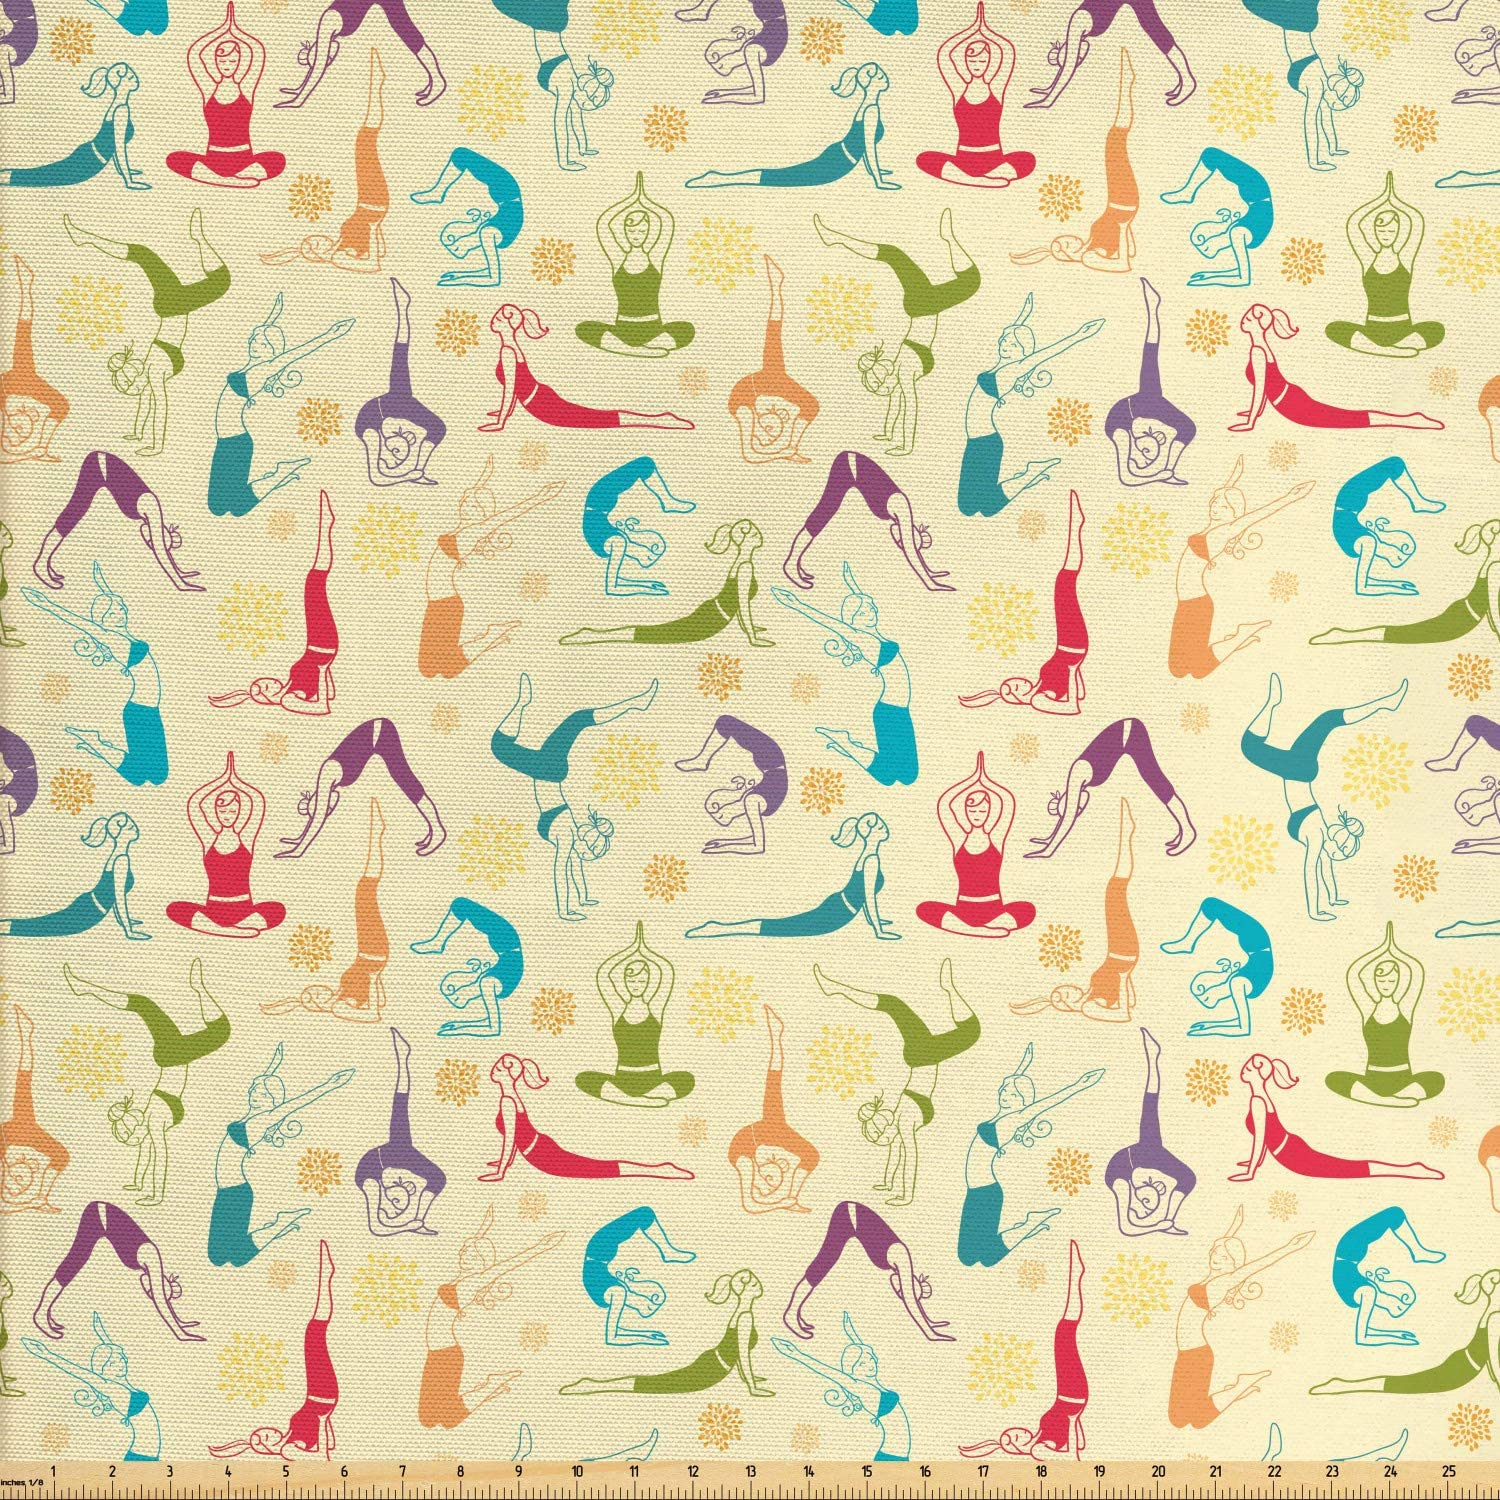 Ambesonne Yoga Fabric by The Yard, Workout Themed Fitness Girls Pattern Abstract Meditation Postures Arrangement Asian, Decorative Fabric for Upholstery and Home Accents, 1 Yard, Multicolor